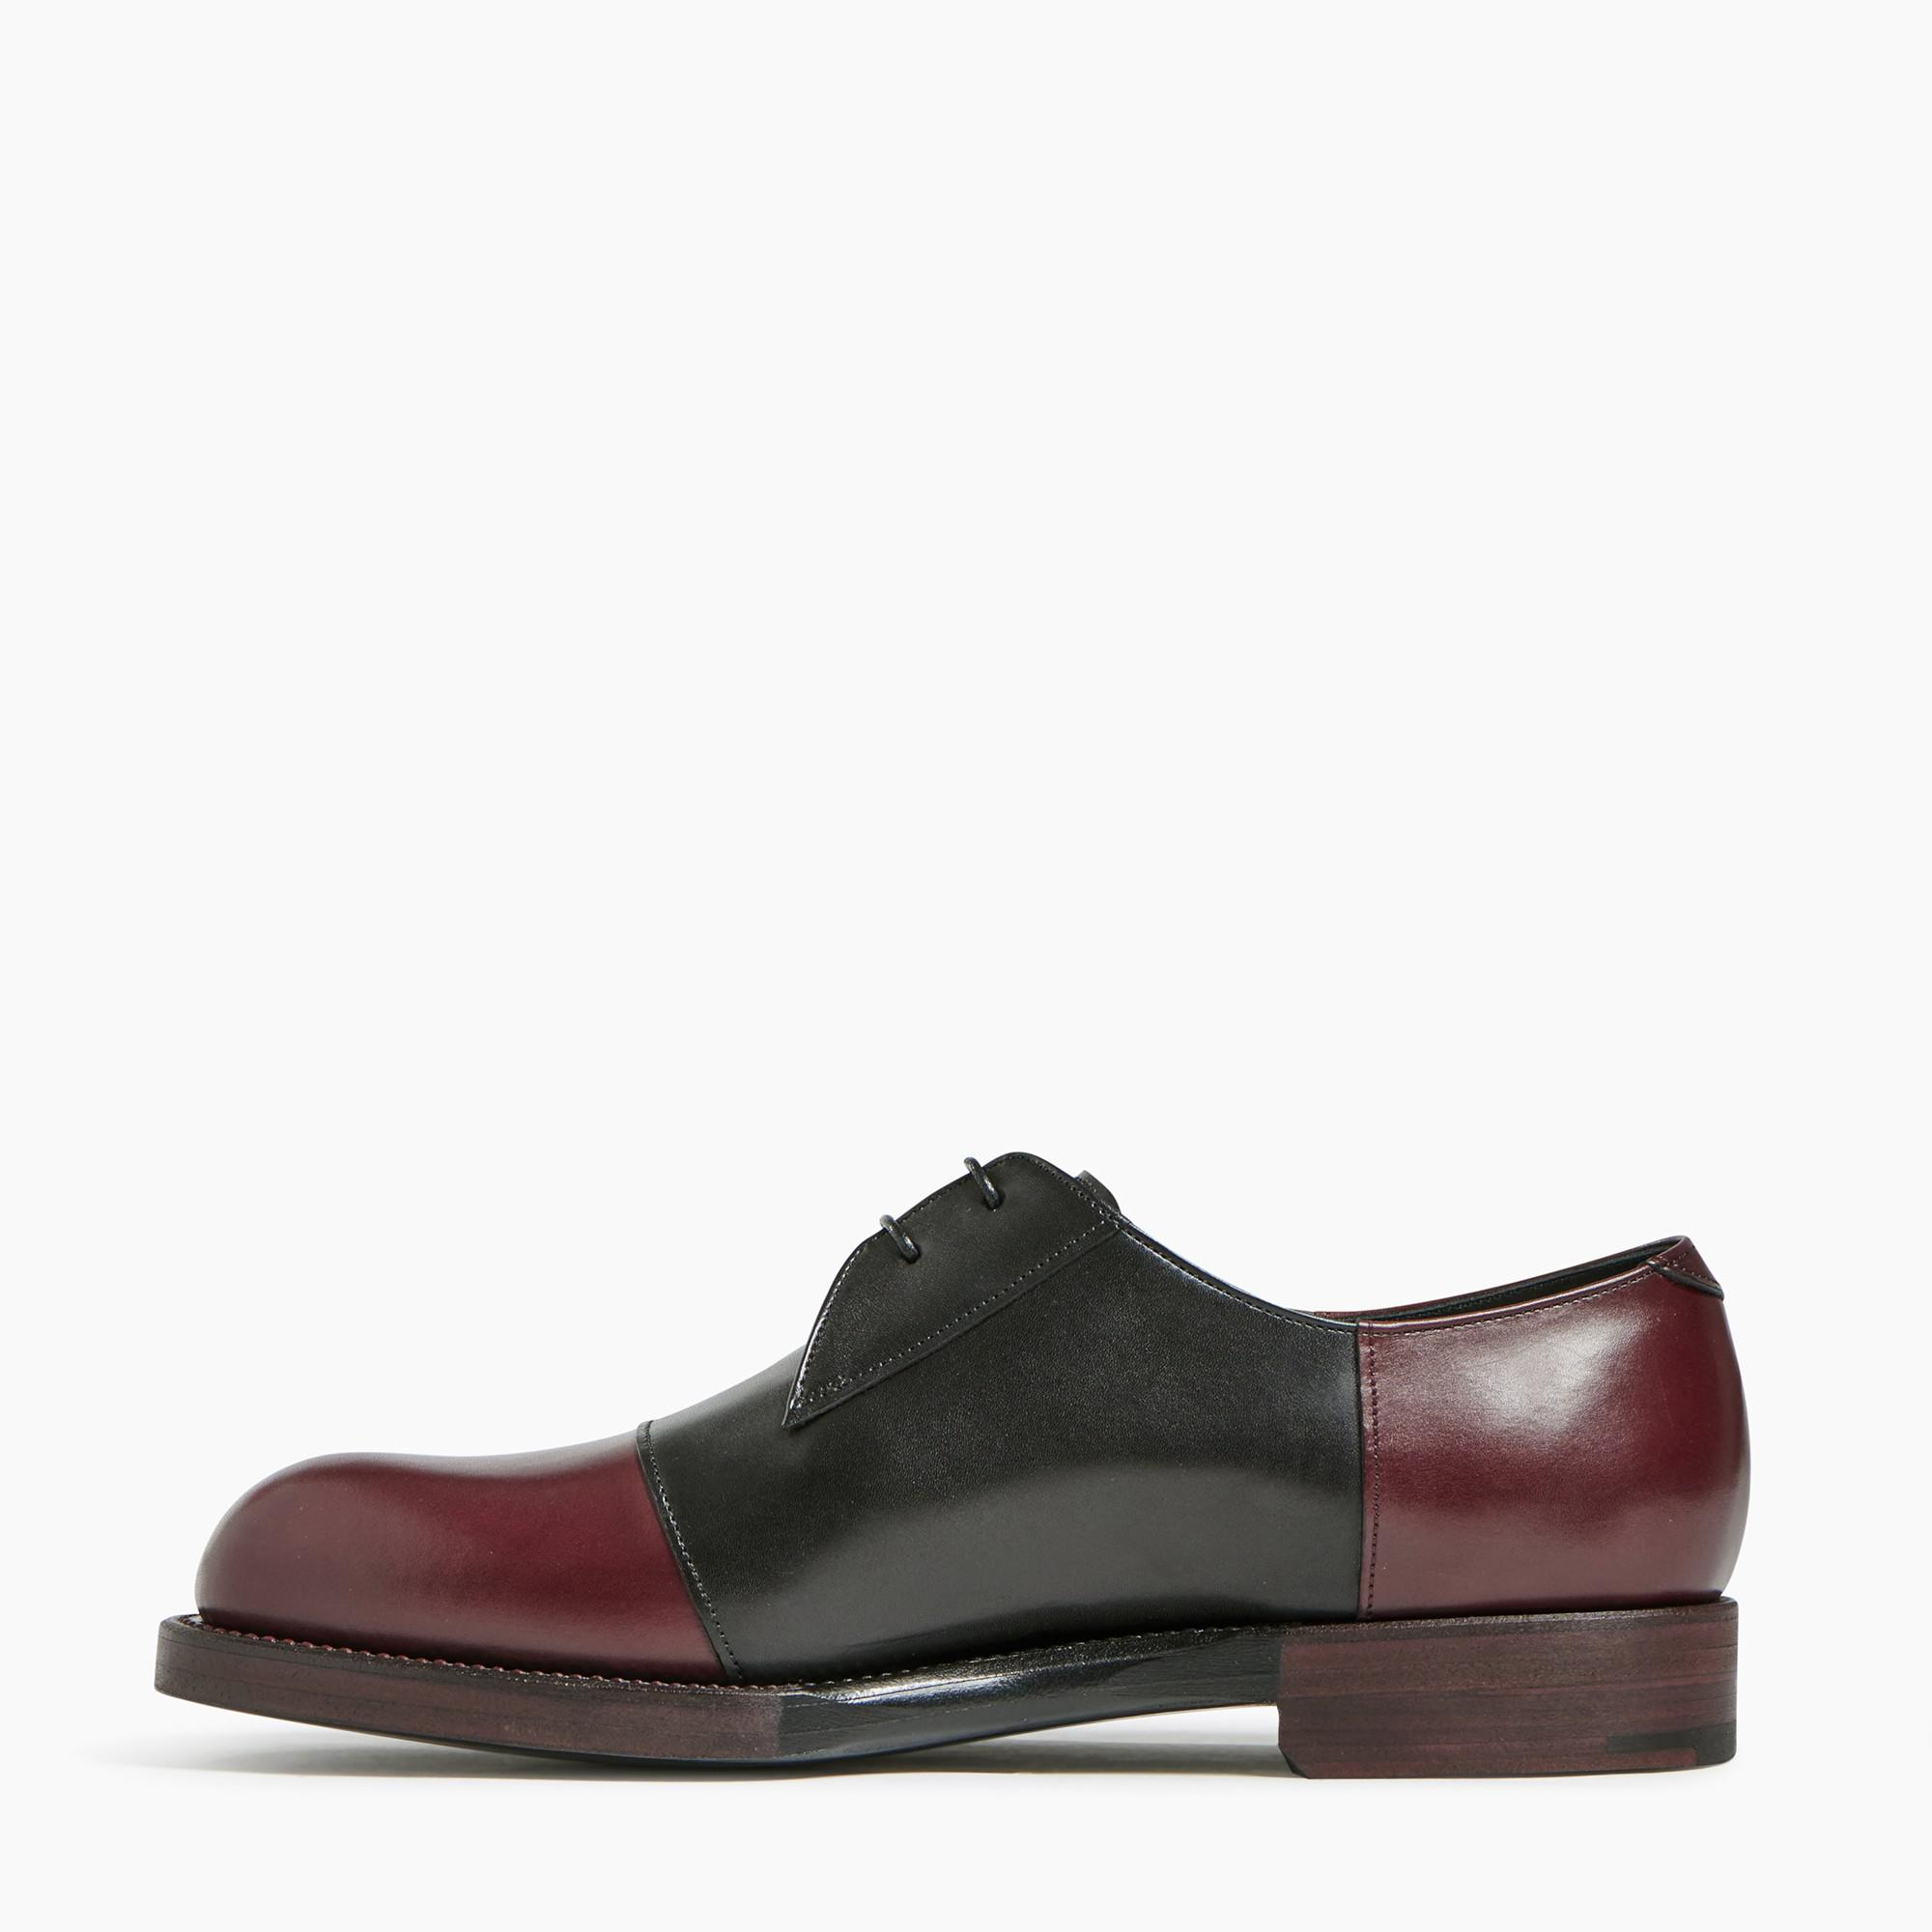 Pierre Hardy Wall Street Spot shoes pre order big sale cheap online latest free shipping 100% guaranteed perfect online hxJYk8